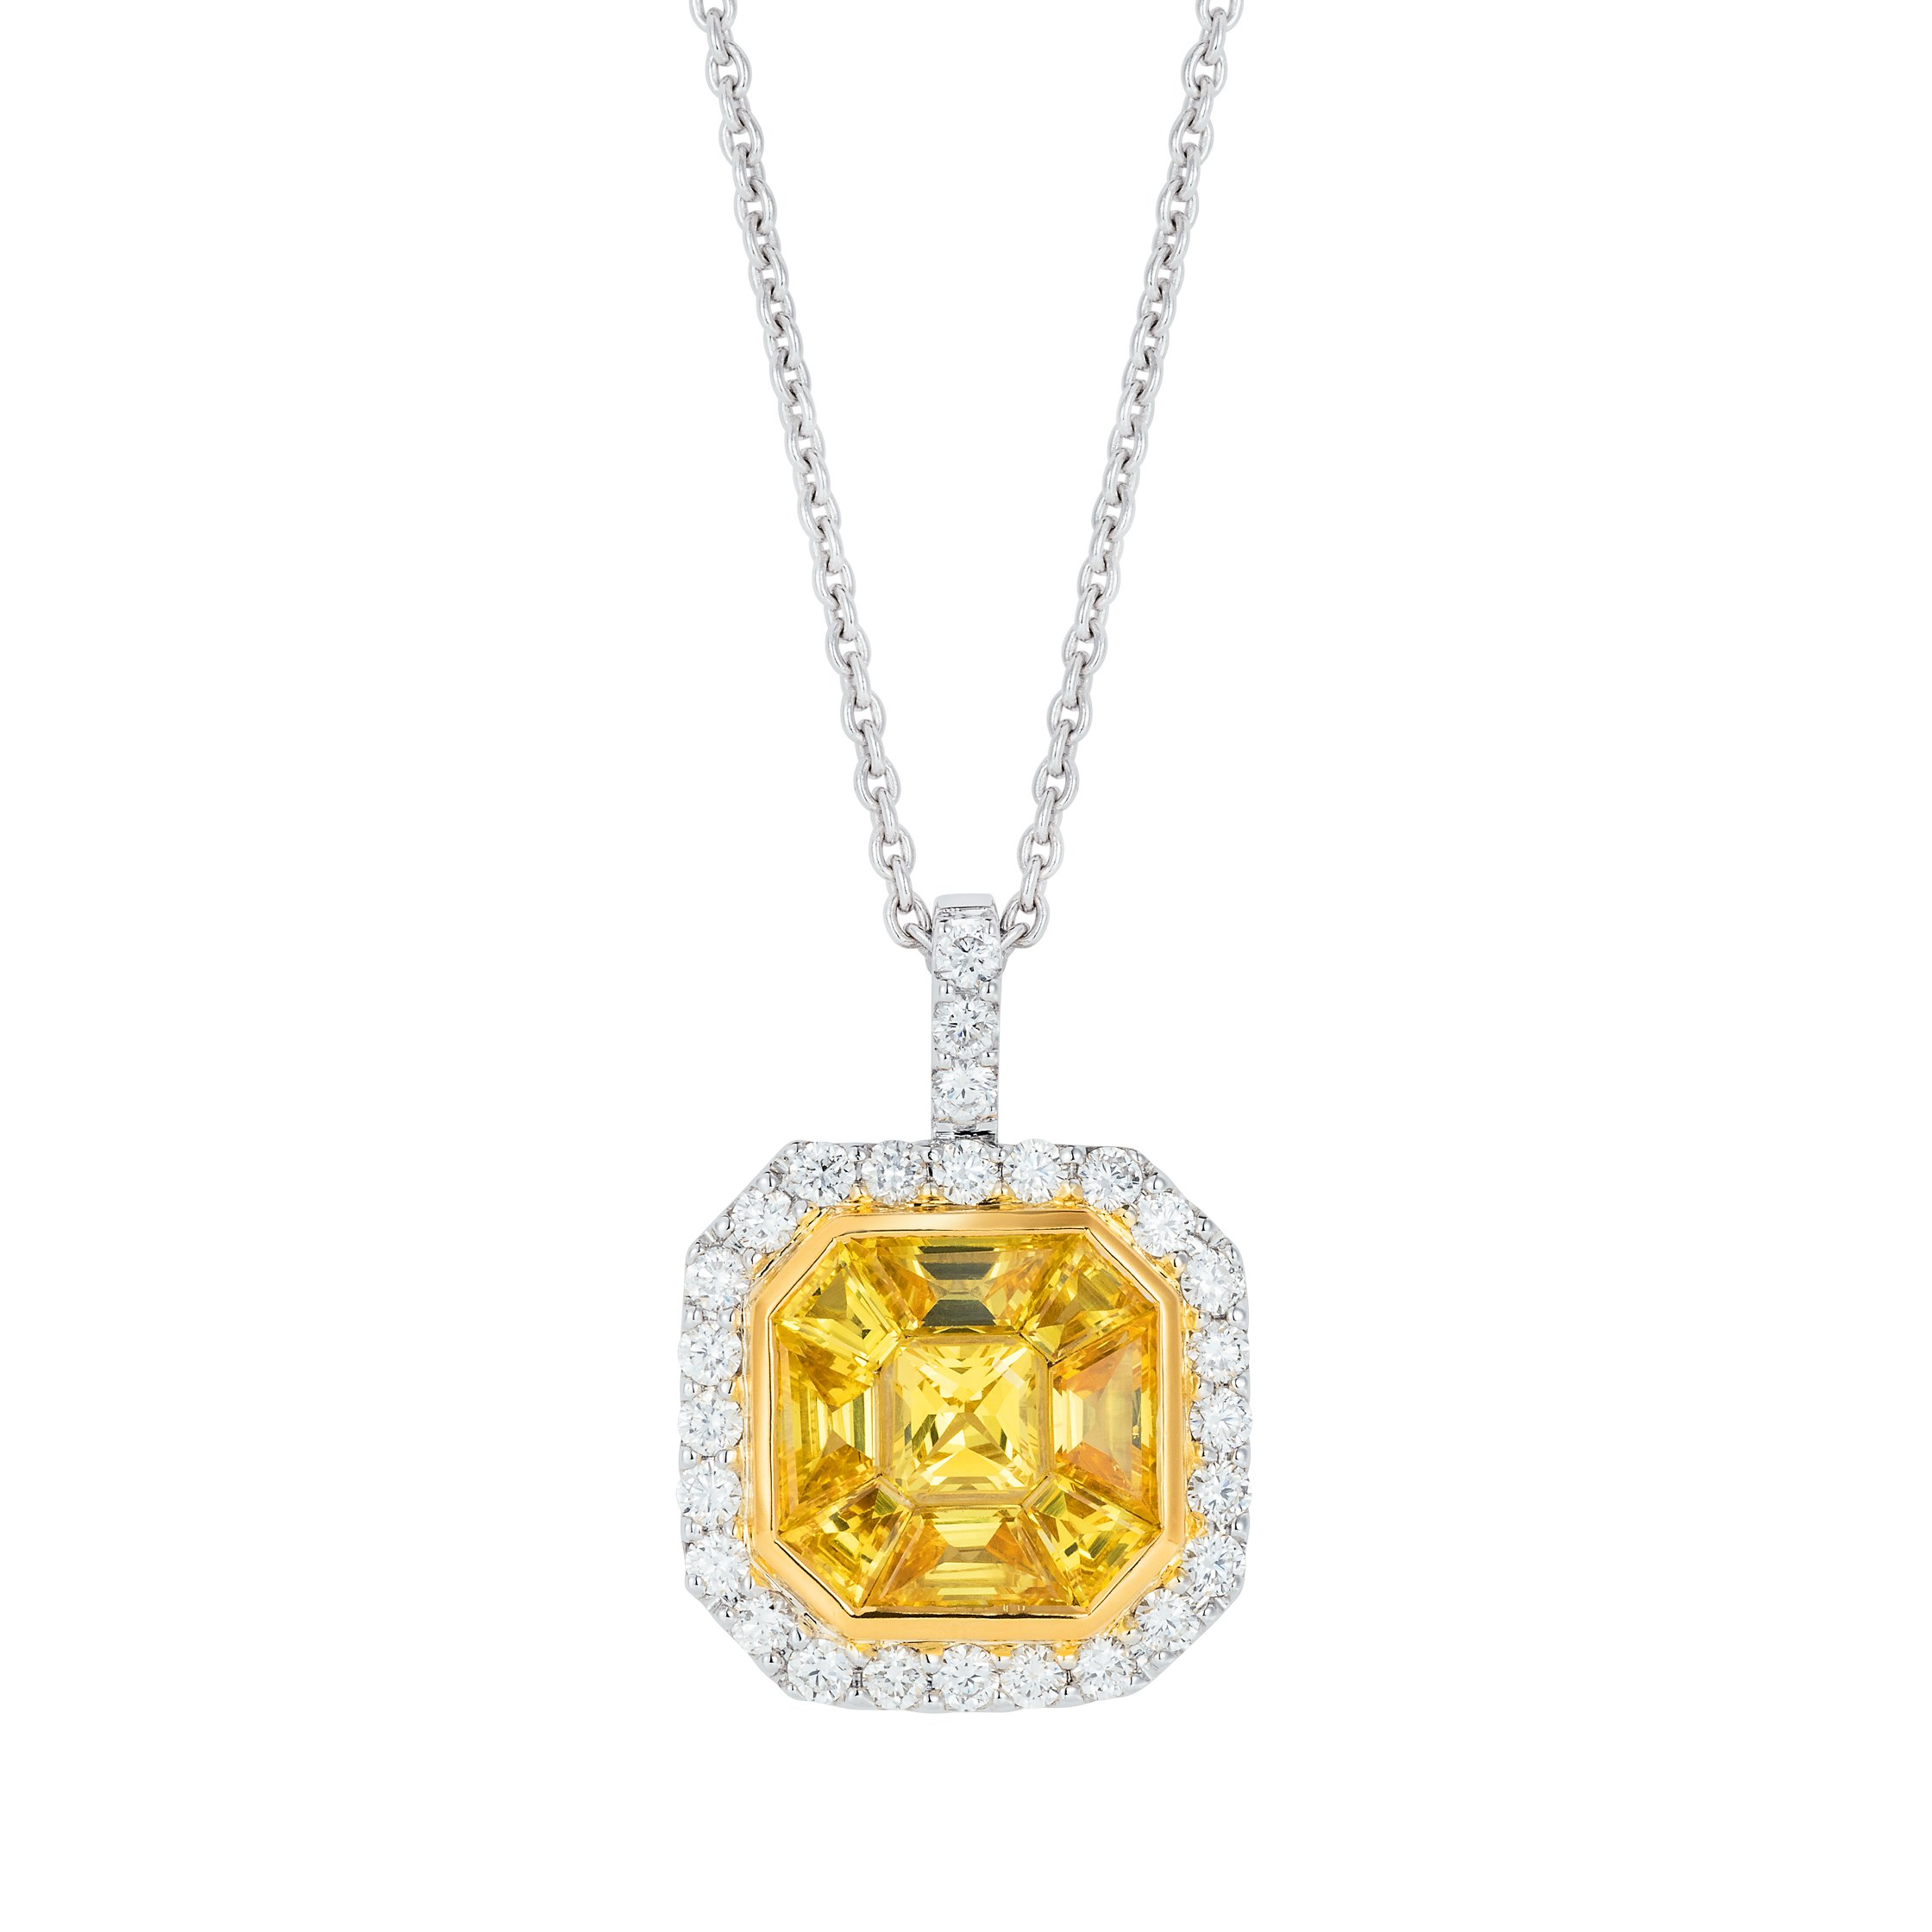 pendant itm jewelry classiy stone is carat silver loading image yellow sterling sapphire